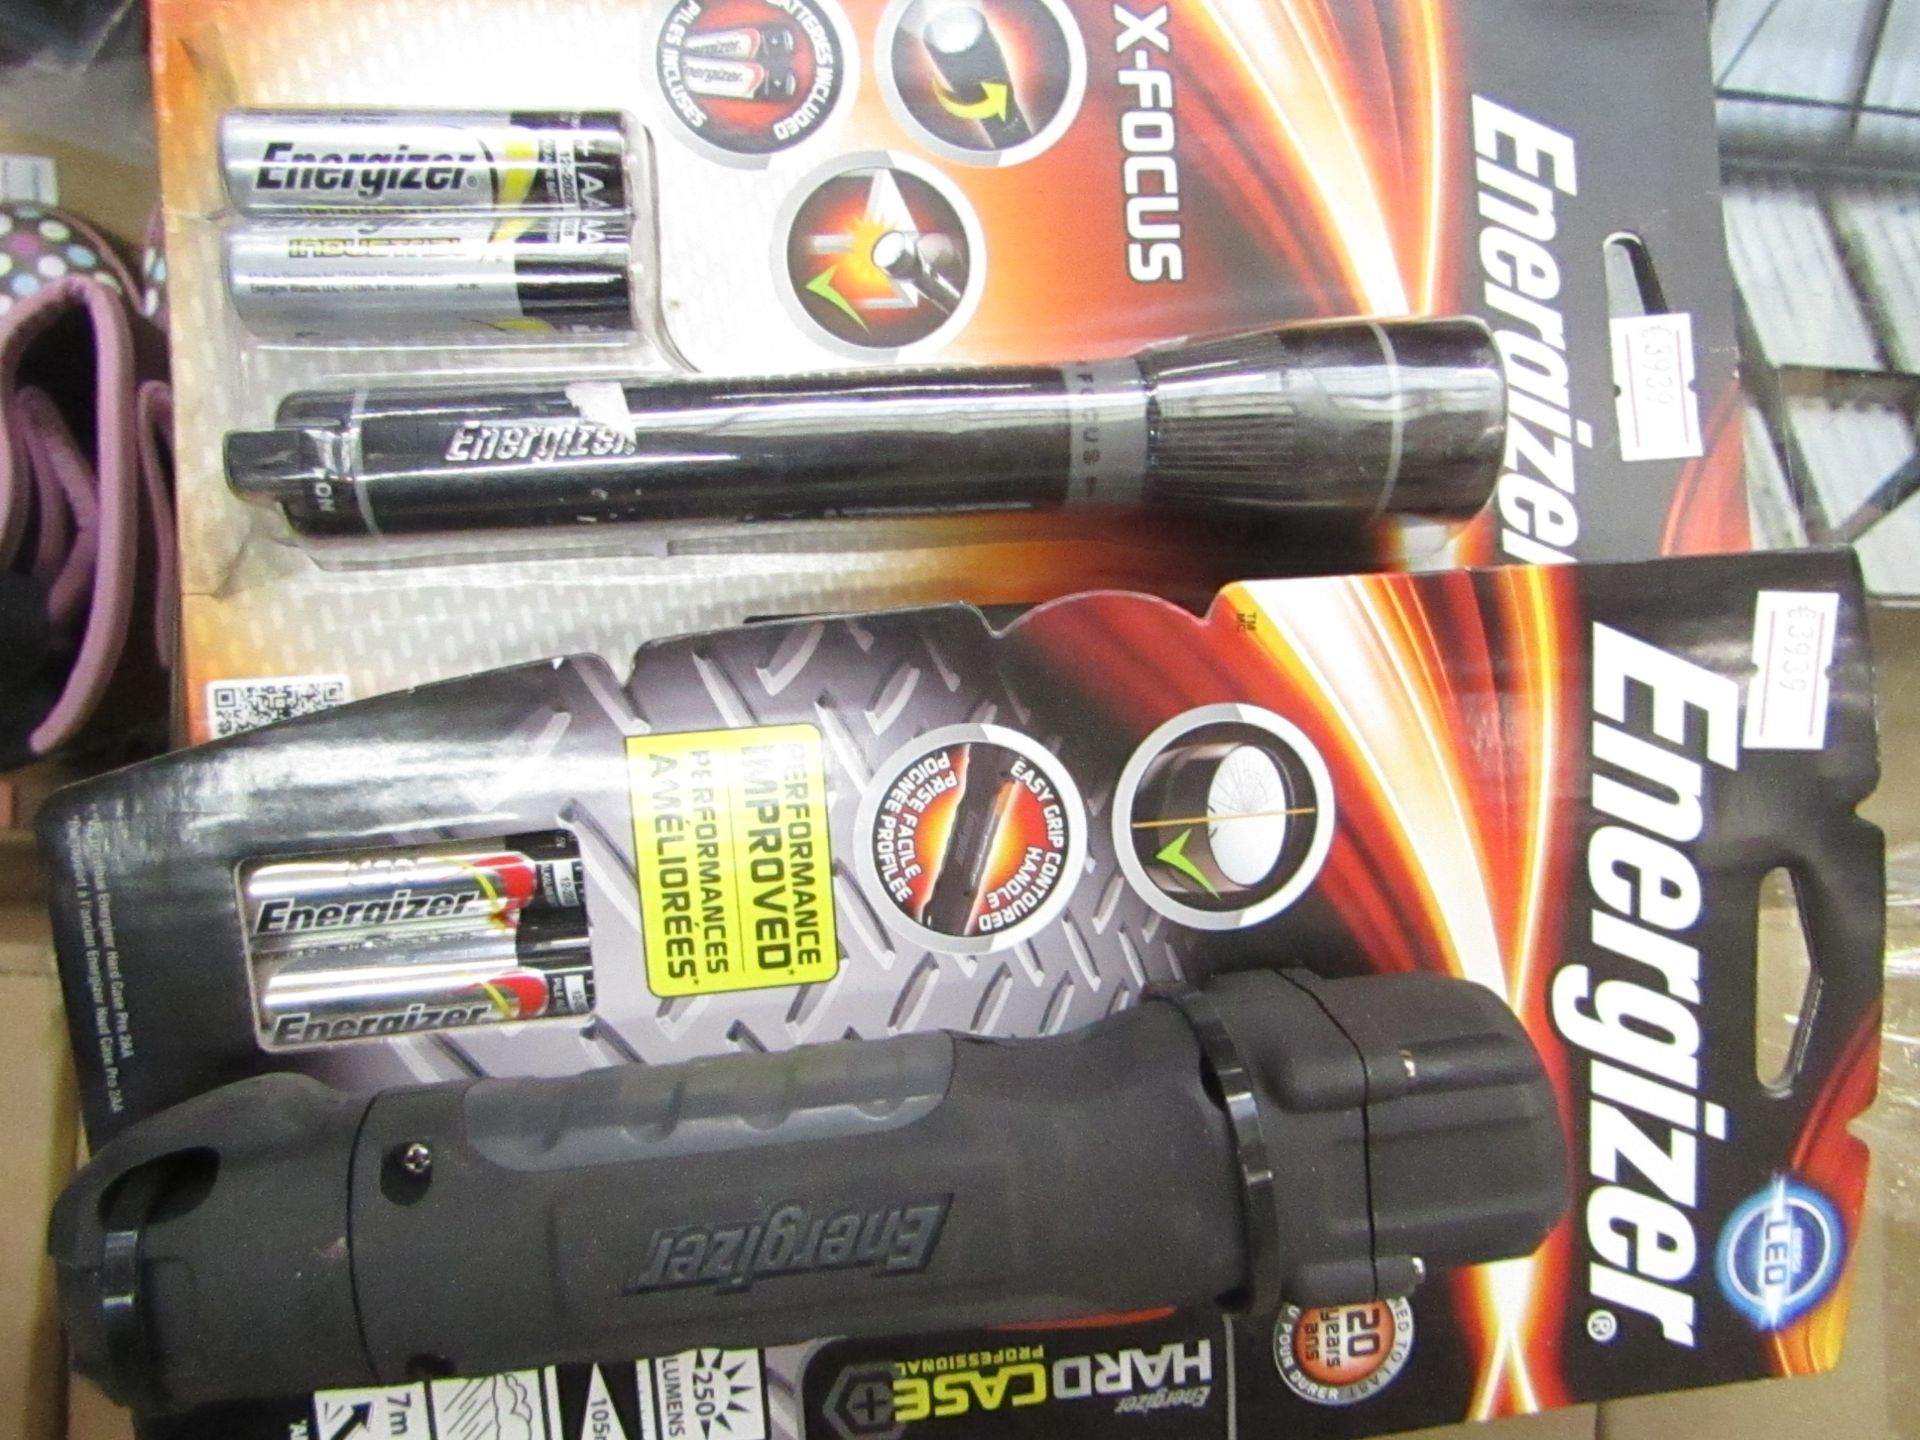 Lot 46 - 2 items being 1 x Energizer Hard Case professional LED torch & 1 x Energizer X Focus Torch both new